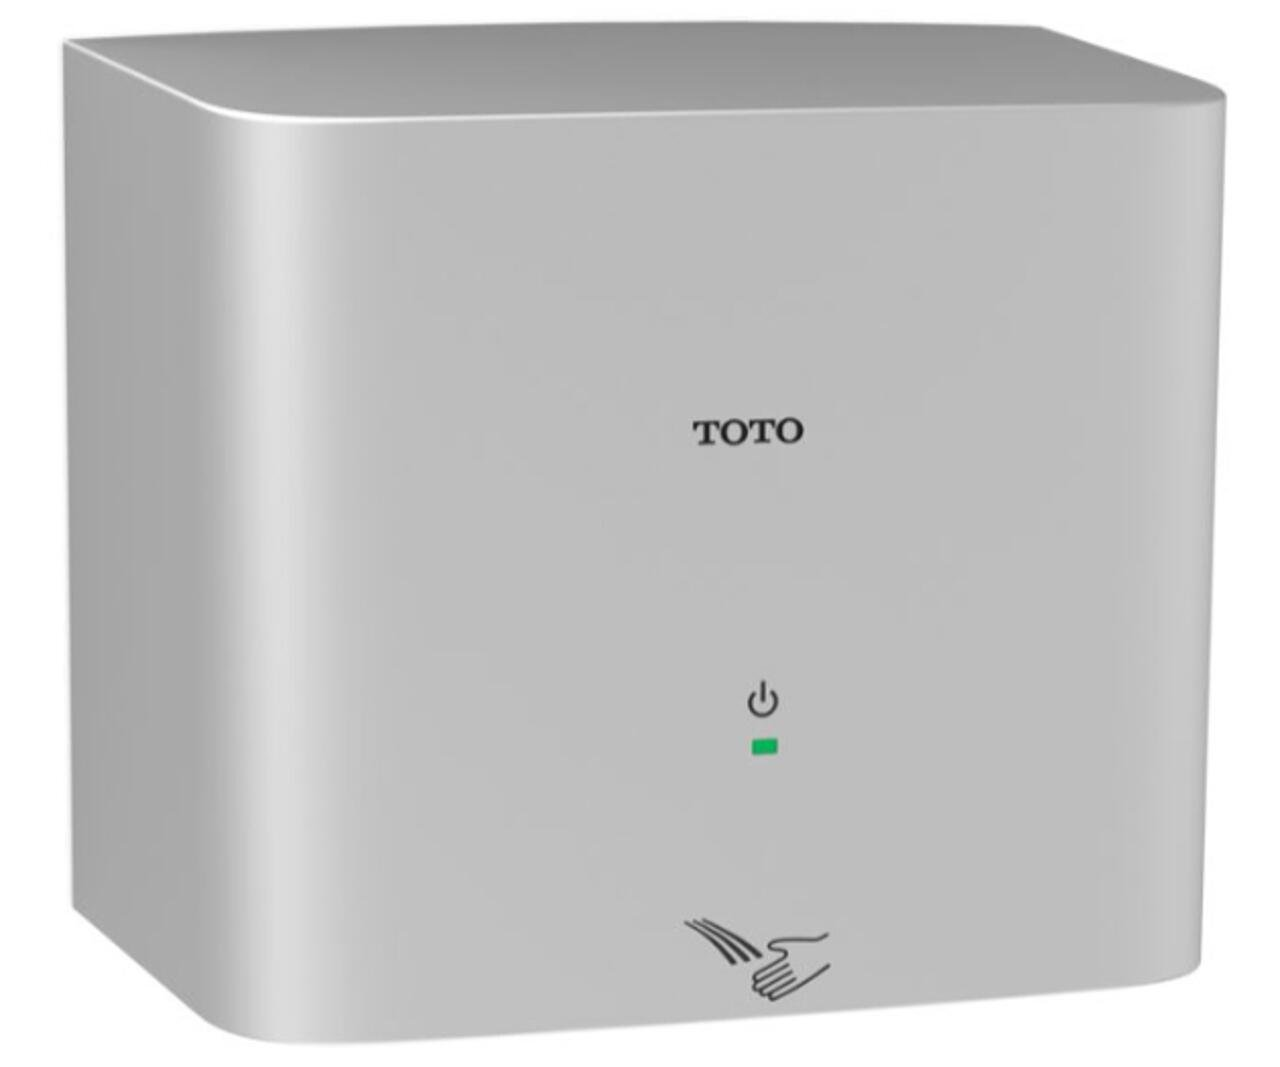 Toto HDR130#SV Clean Dry Hand Dryer, 390-watt